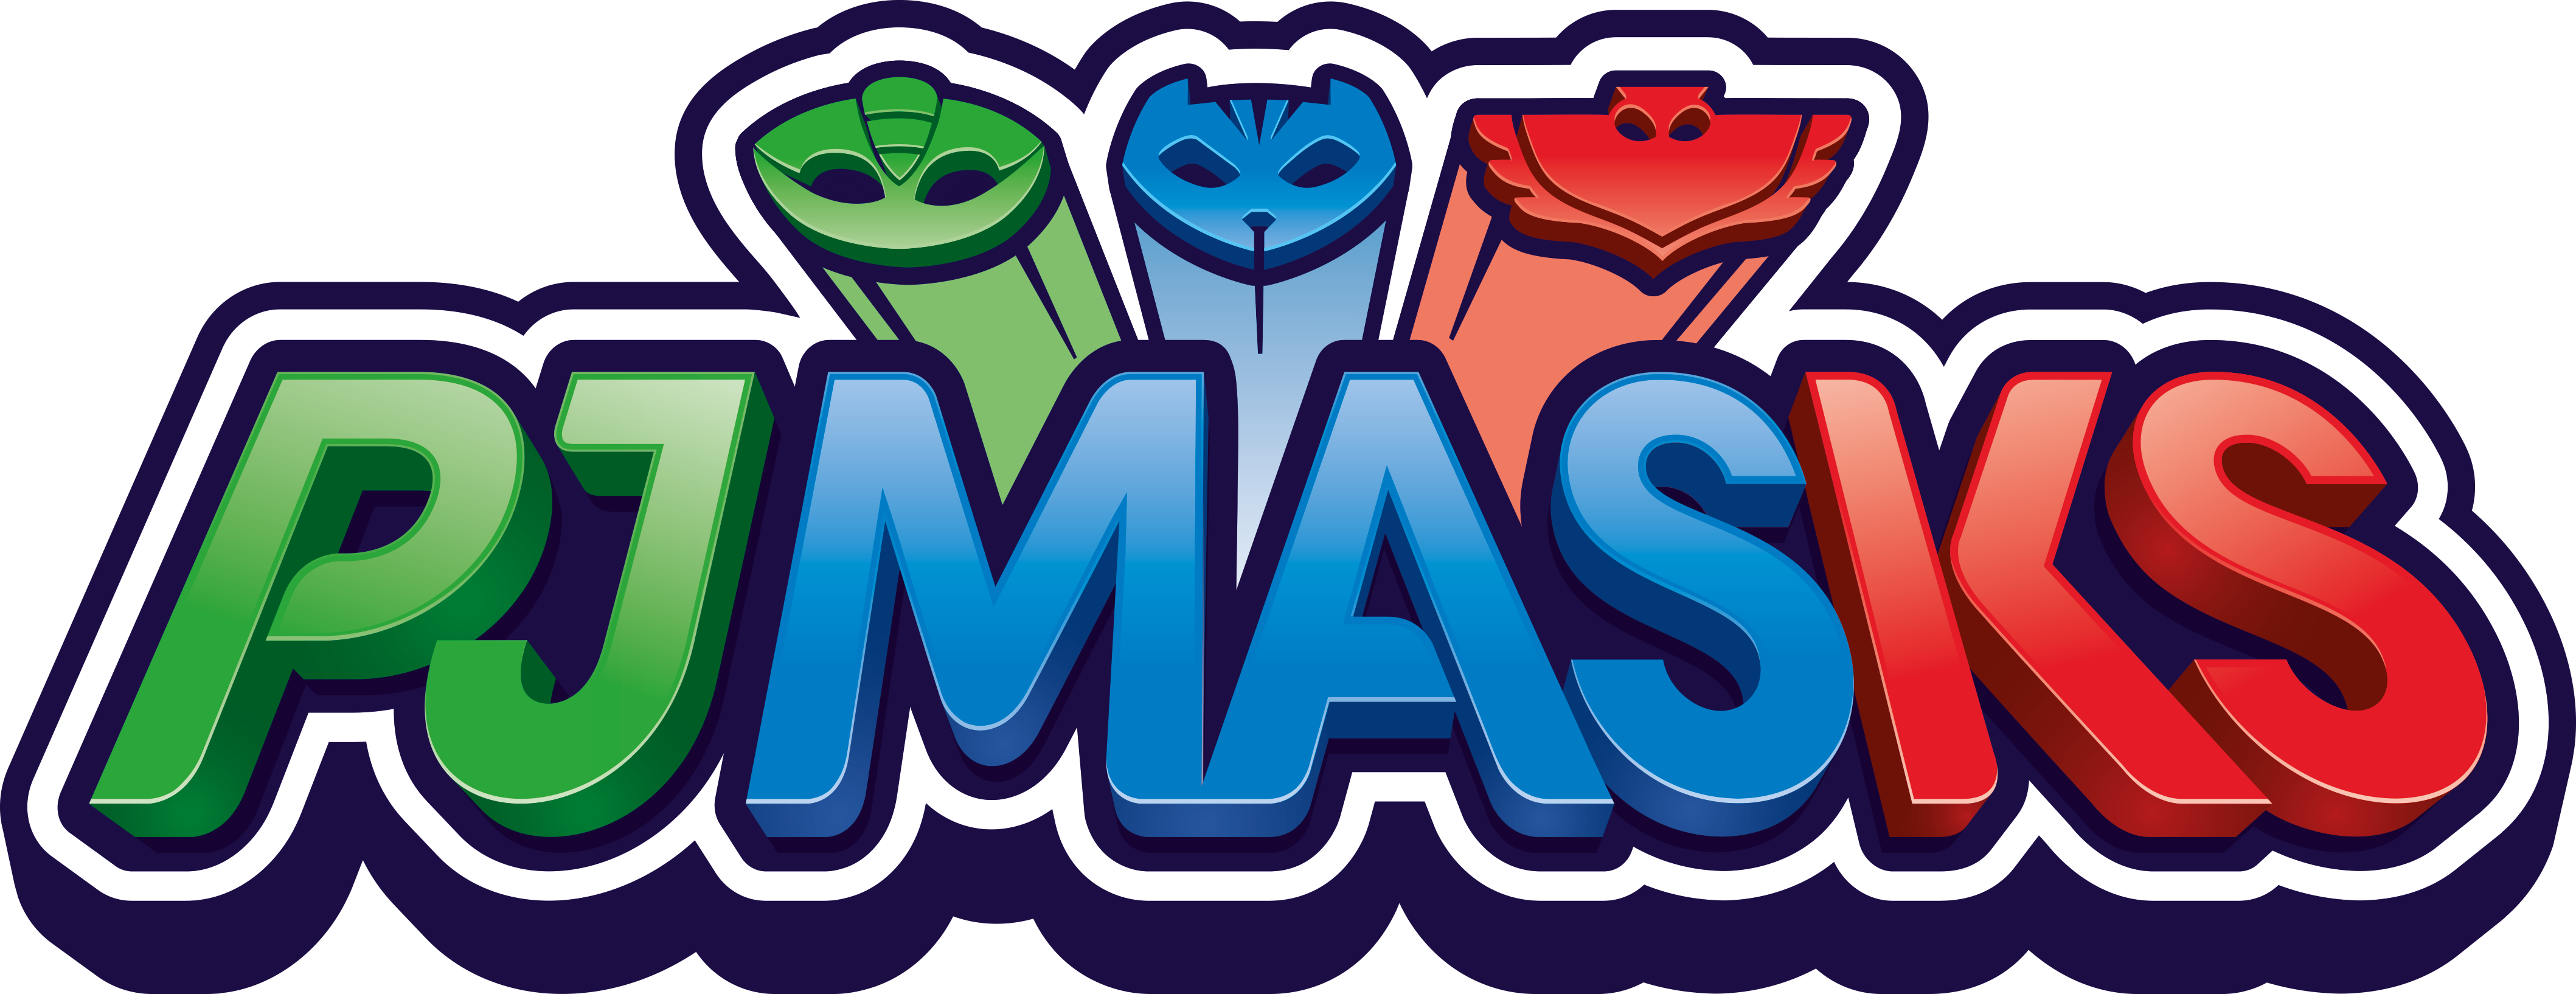 Pj mask logo png. Ndna partners with entertainment